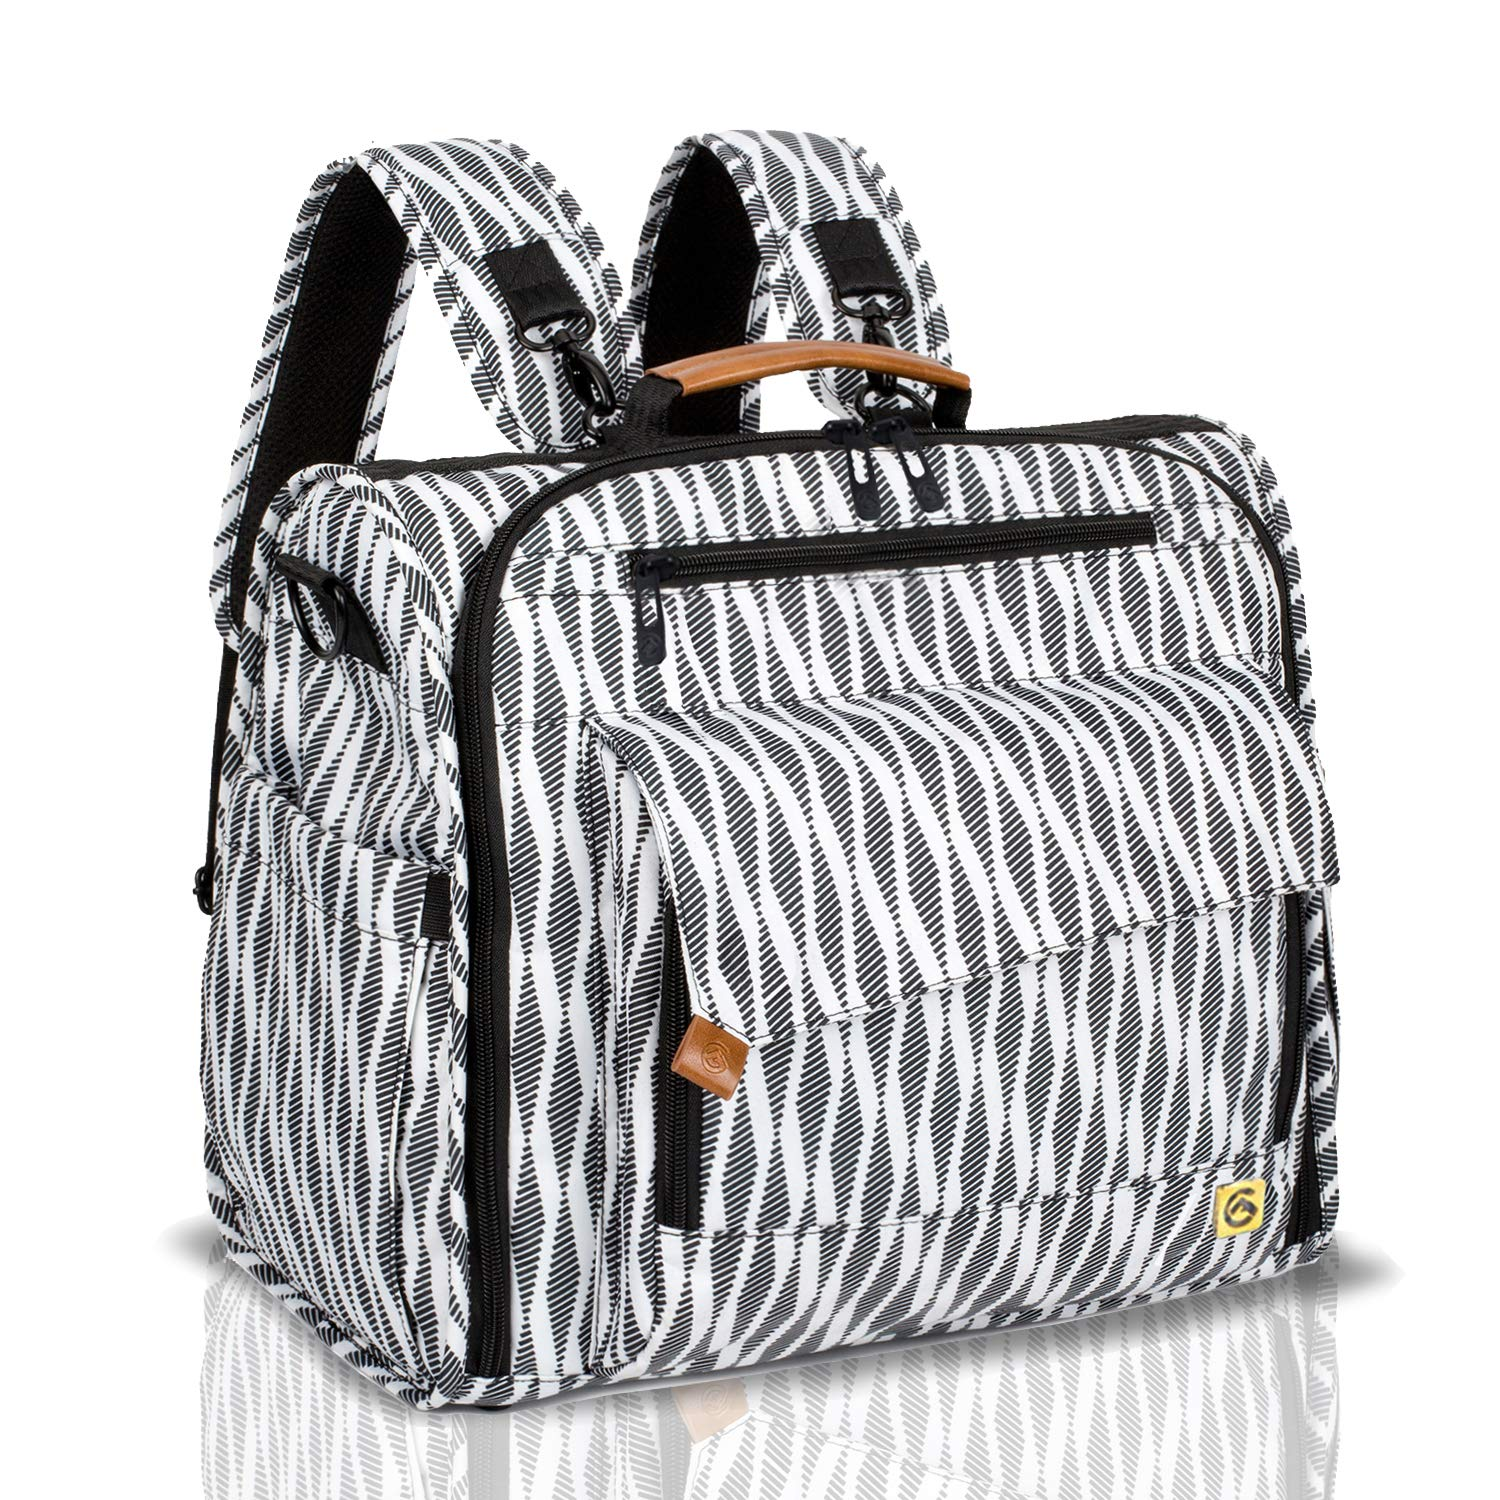 ALLCAMP Zebra Diaper Bag Large, Support Baby Stroller, Converted Into a Tote Bag, Black and White by ALLCAMP OUTDOOR GEAR